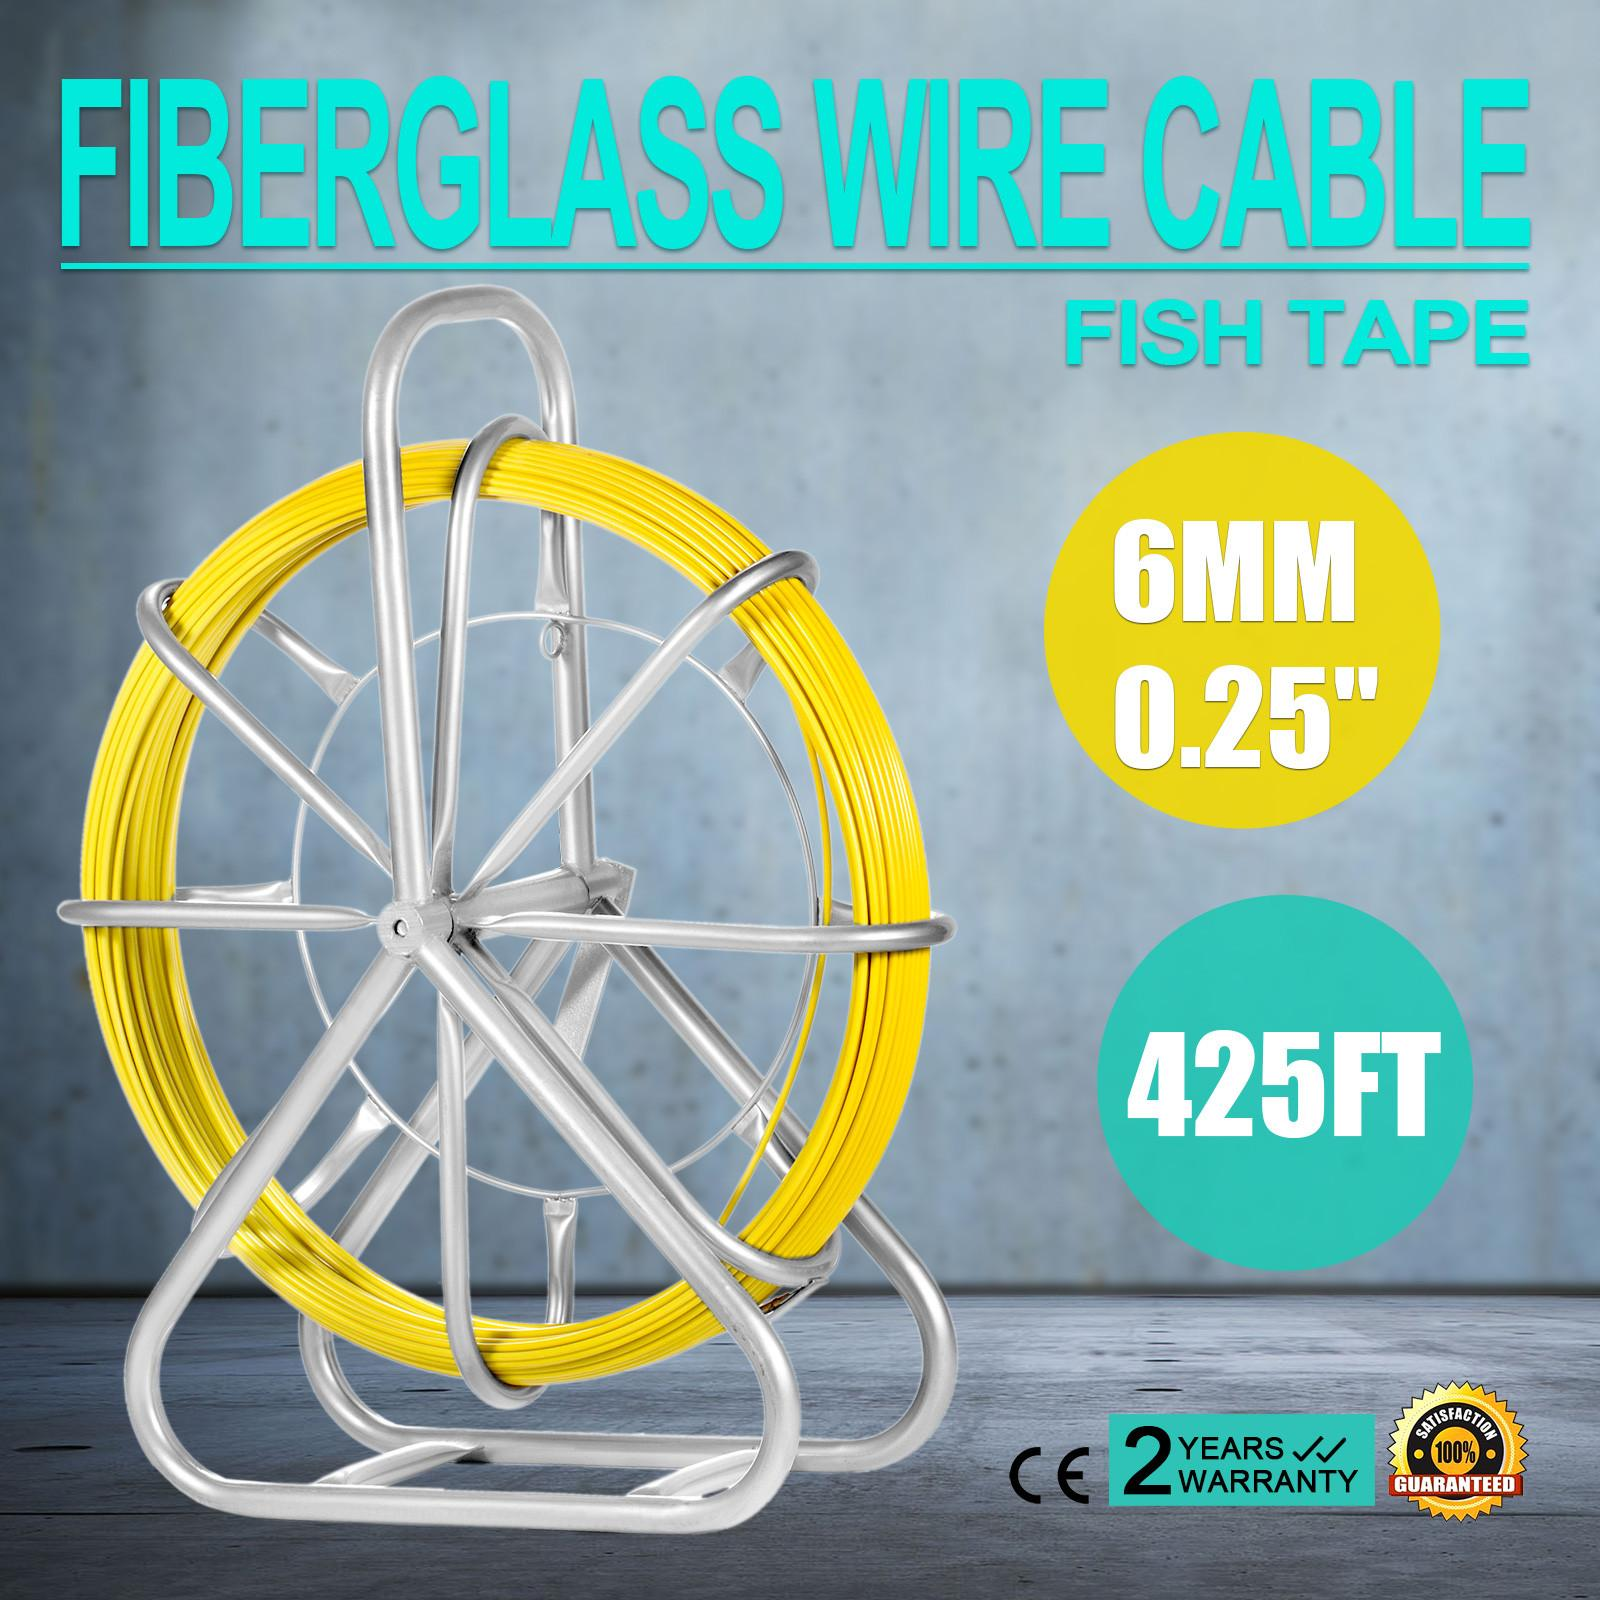 Fiberglass Wire Harness Wiring Library Best Vevor Fish Tape 6mm 425ft Duct Rodder Continuous Cable Running